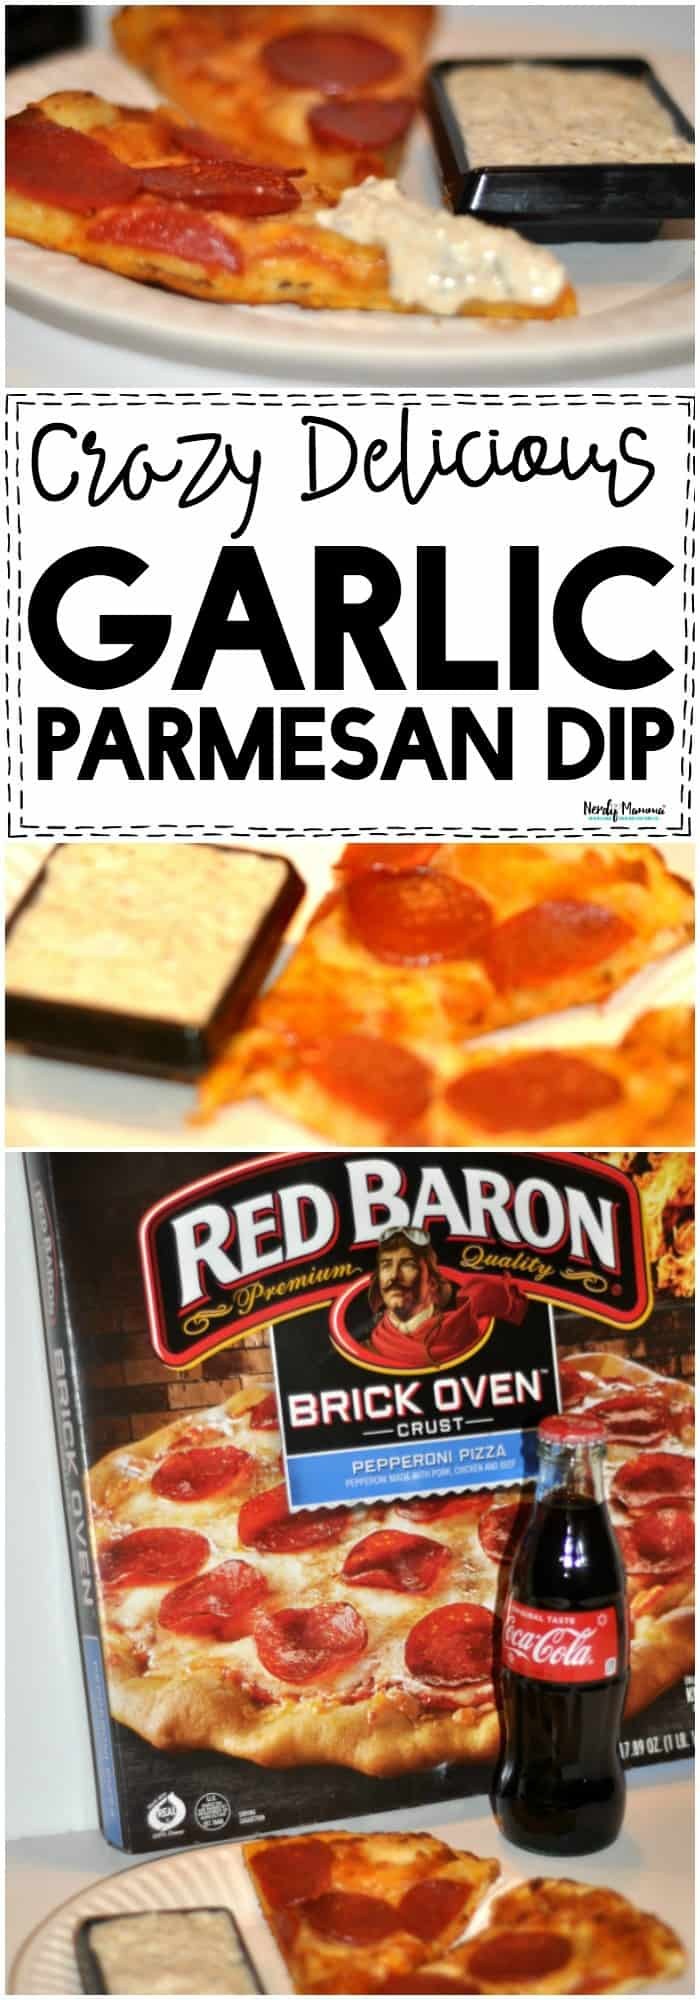 OMG you've GOT to check out this crazy delicious garlic parmesan dip for pizza night! #PizzaNight #Garlic #Parmesan #Dip #PizzaRecipe #Recipes  #GrabSomeCheer